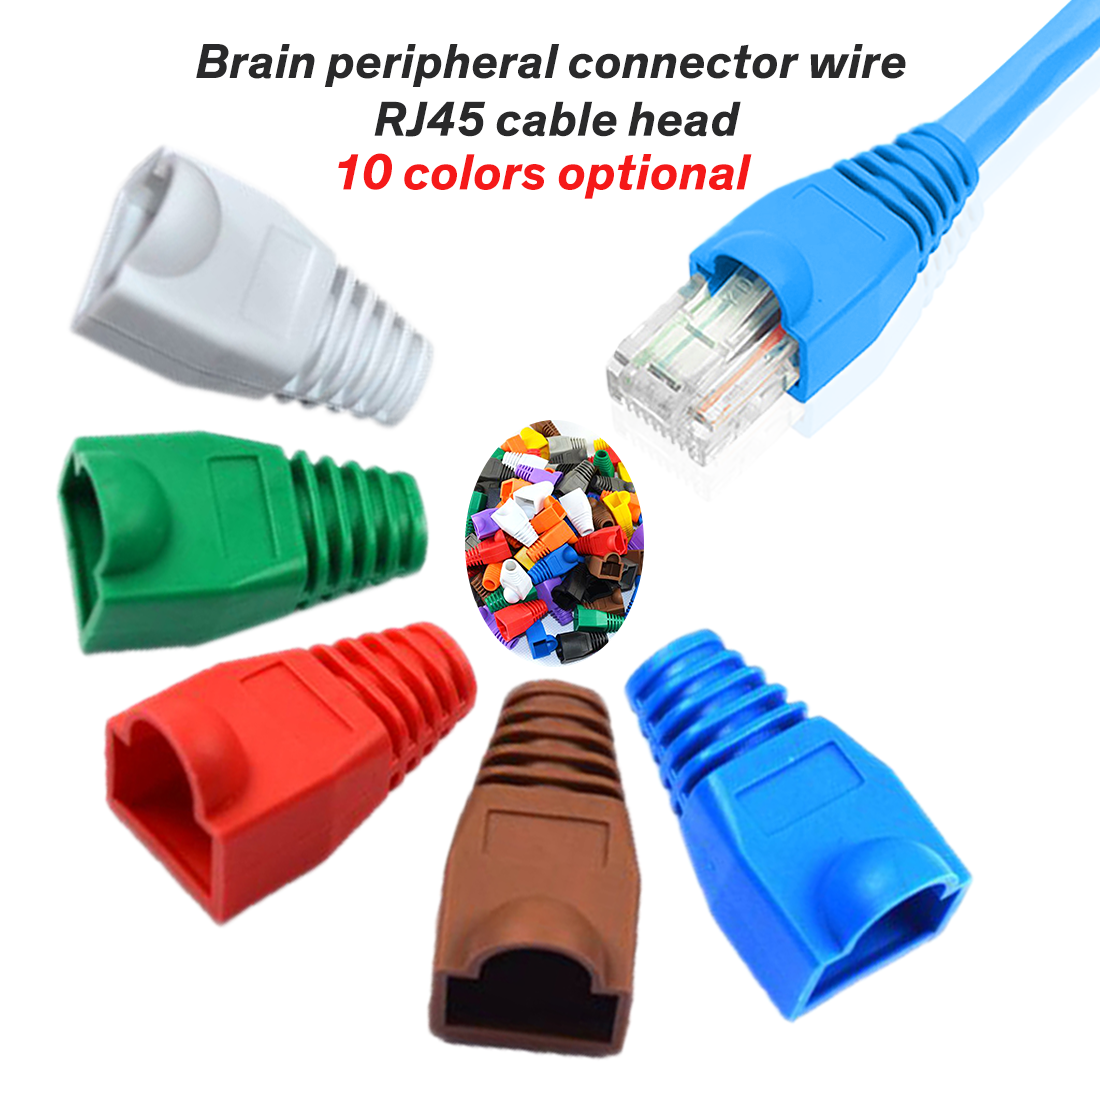 CAT5E CAT6 RJ45 Cap Connector  Plug Cap  Ethernet Network Cable Strain Relief Boot  Protect Cover